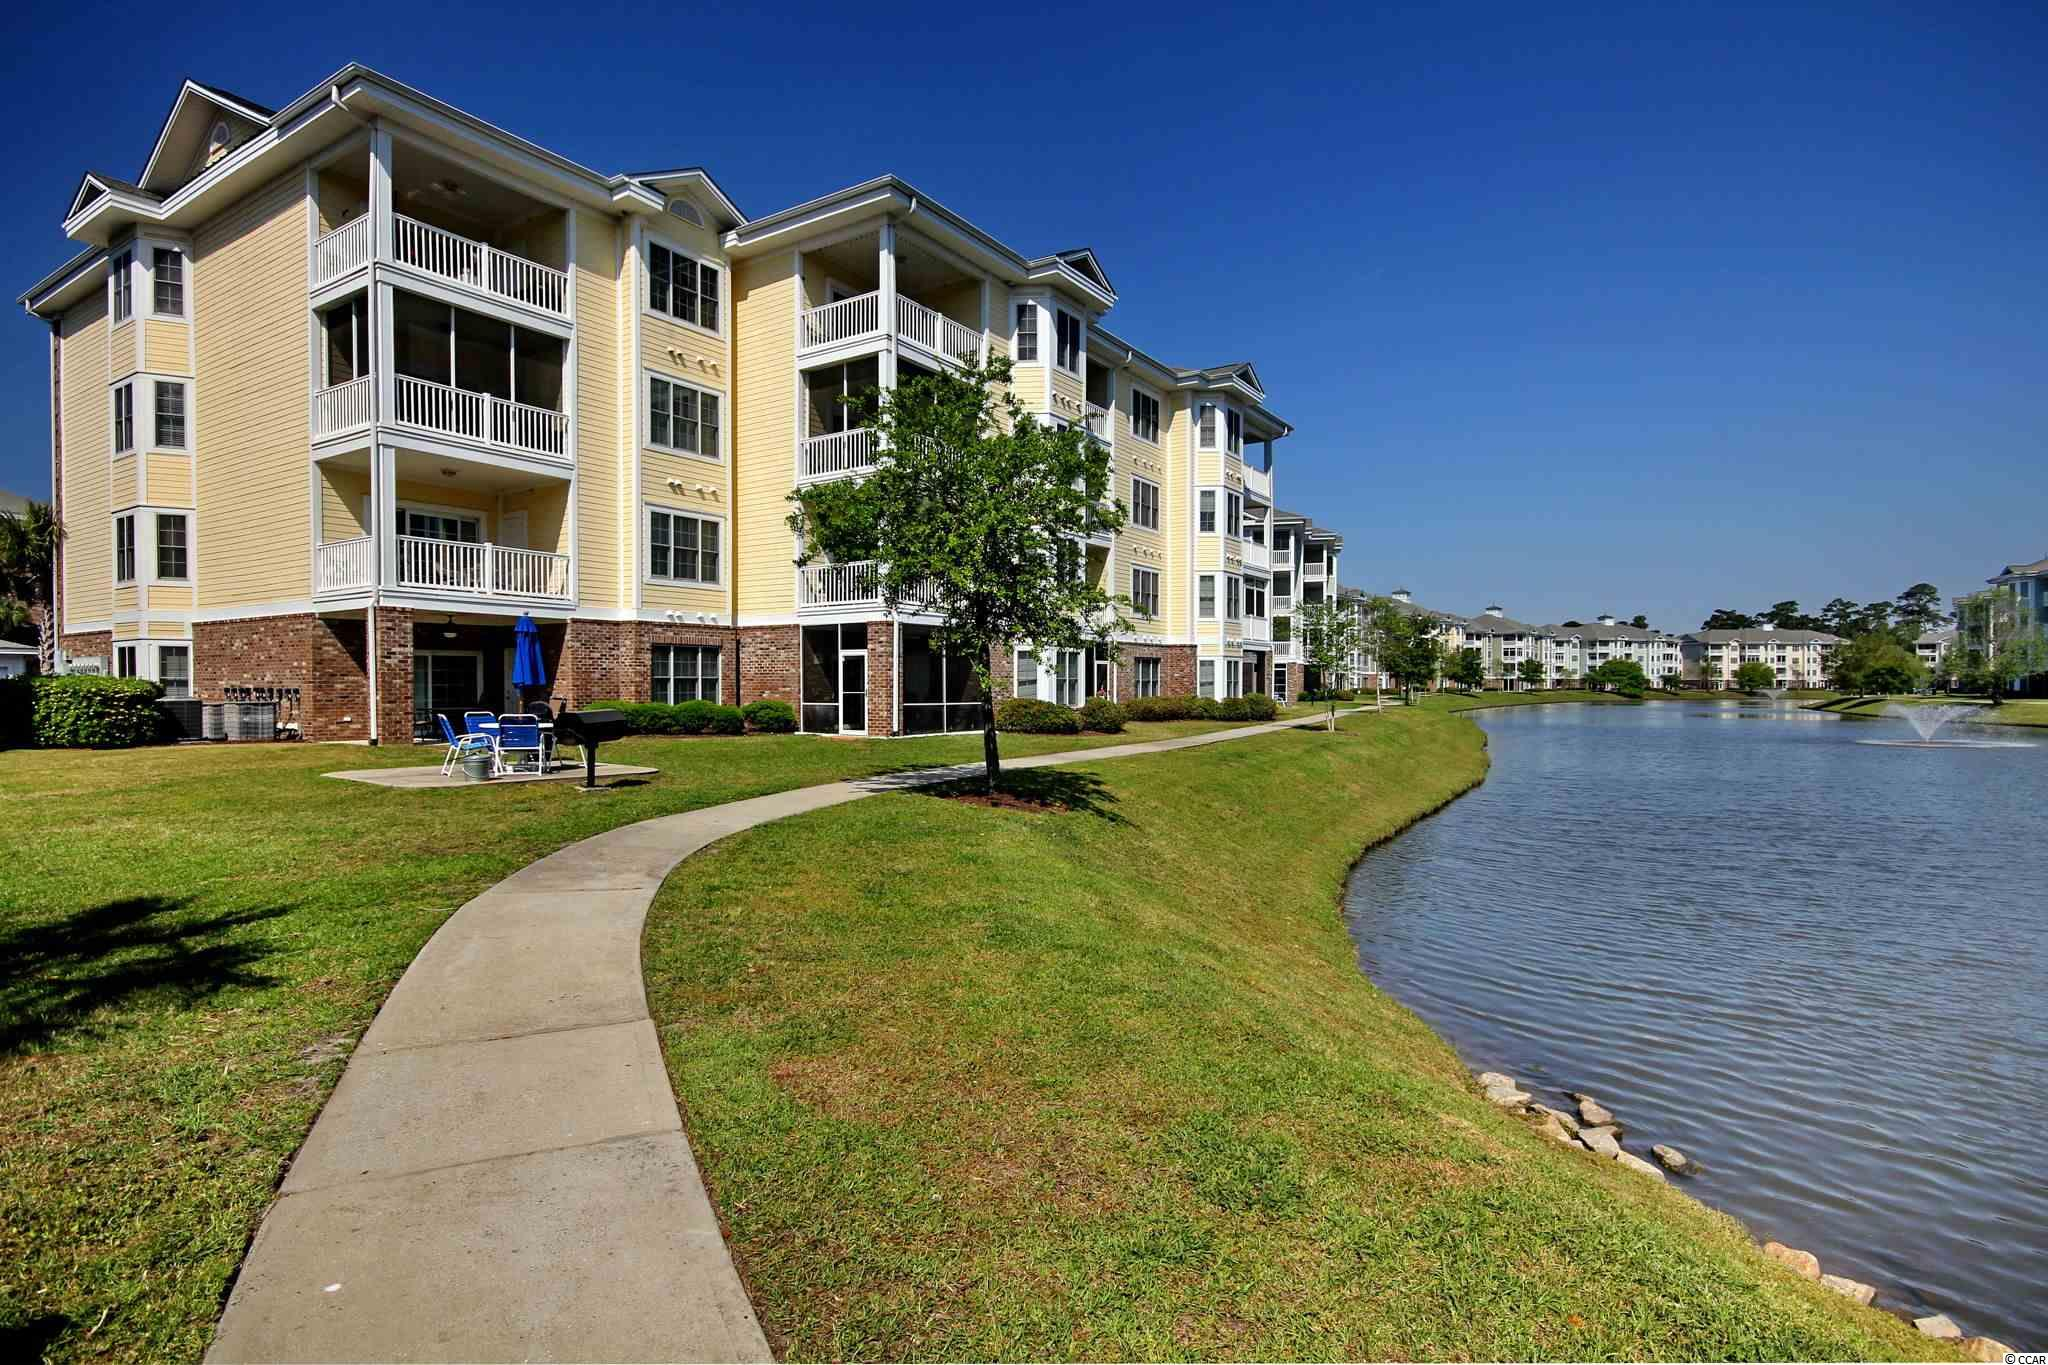 A spacious 3Bed/2Bath END UNIT Condo in Magnolia Pointe with a private screened balcony overlooking the pond - an elevator building in a beautiful, well planned and superbly managed golf course community delivering easy living in Myrtle Beach. Open concept & spacious with a large balcony and panoramic views of the pond, fountain and green space! All rooms are centered around the large, open kitchen. Relax and enjoy oversized rooms, a split bedroom floorplan, end unit windows and the peaceful balcony. This unit has been well maintained and would be perfect as a primary residence, short term or long term rental. Multiple pools, walking trails, lush landscaping, palms & flowering shrubs fill the common areas at Magnolia Pointe. So, so close to everything – Close to Hwy 17 Bypass, Hwy 17 Business, Hwy 31, Hwy 501, Shopping, Dining, Entertainment, Medical, Recreation & a golf cart ride to the beach!